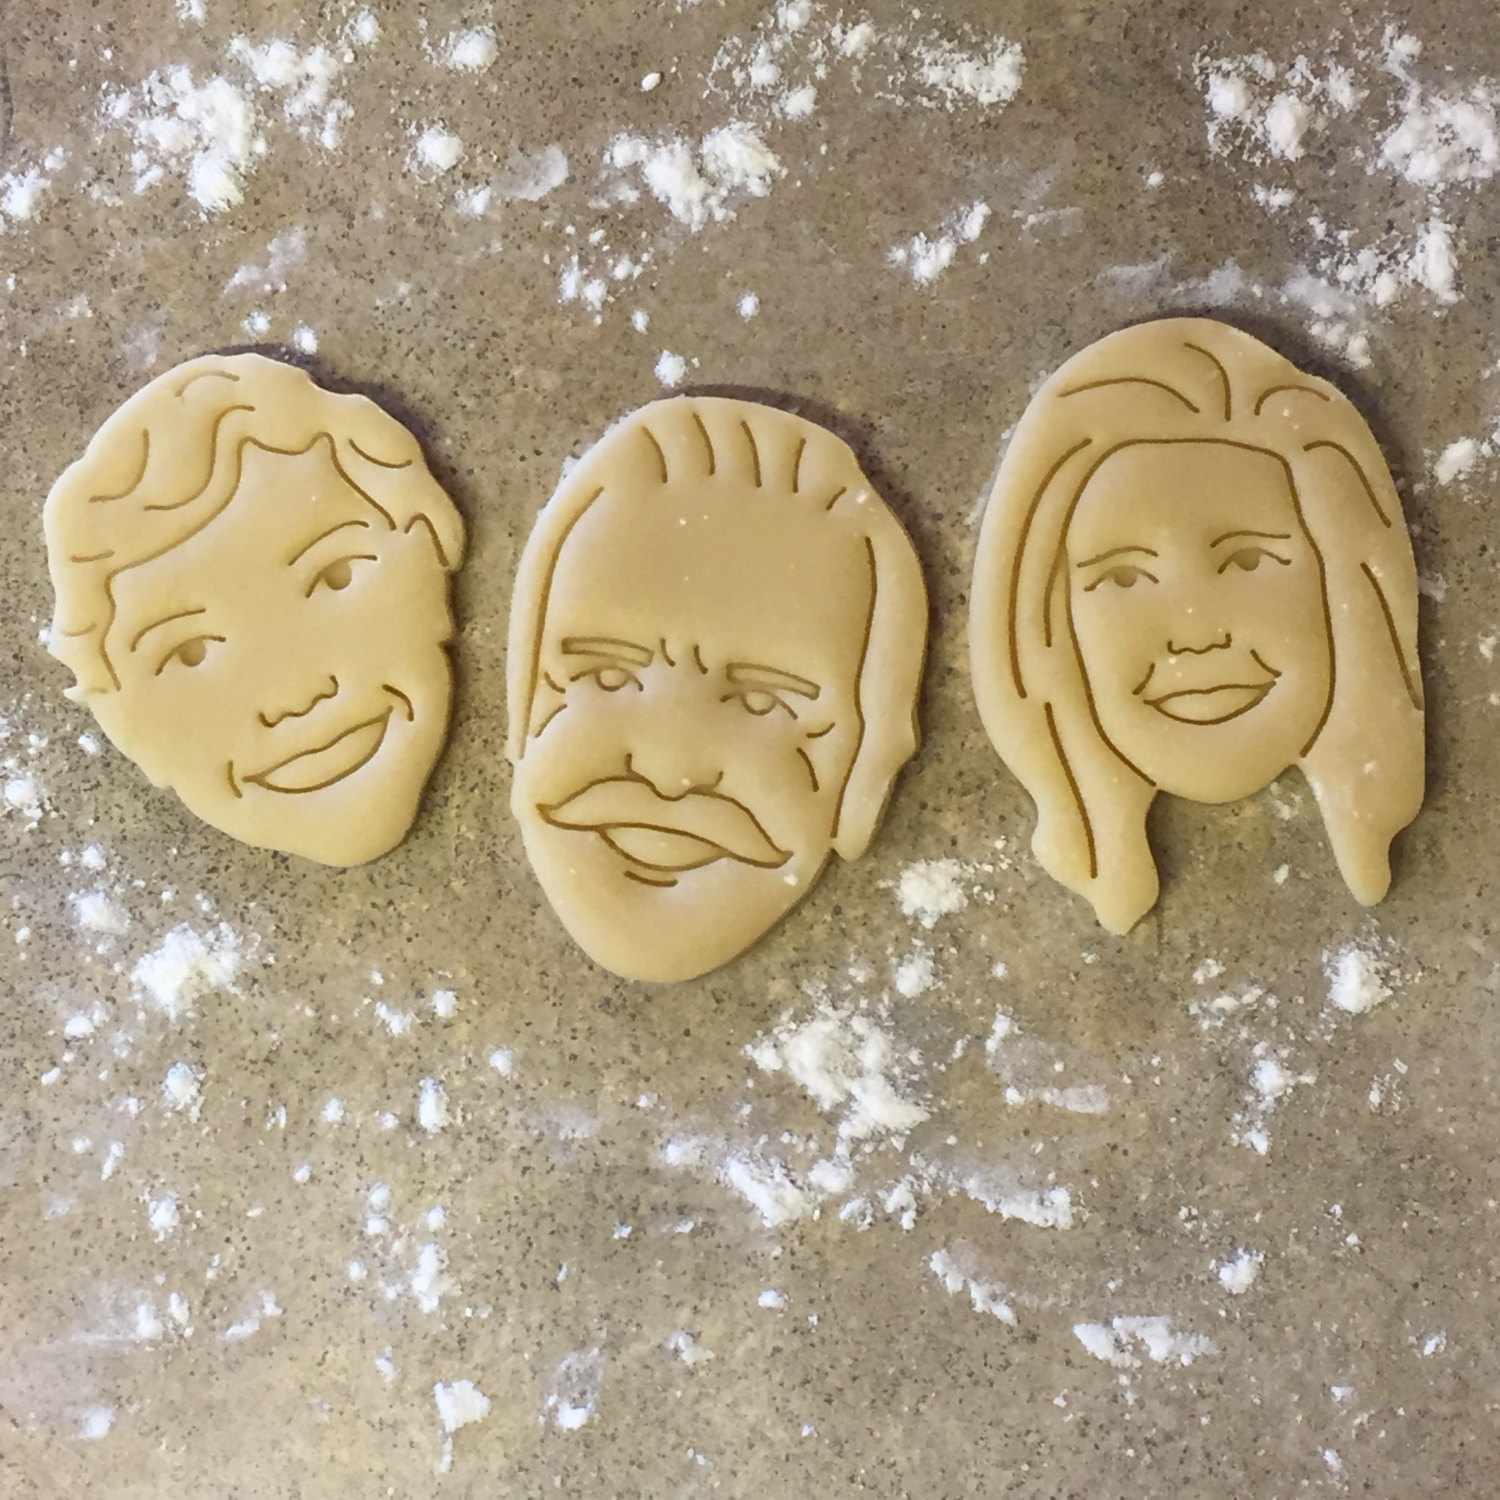 Personalized Cookie Cutters Made From Your Photo   Emmaline Bride